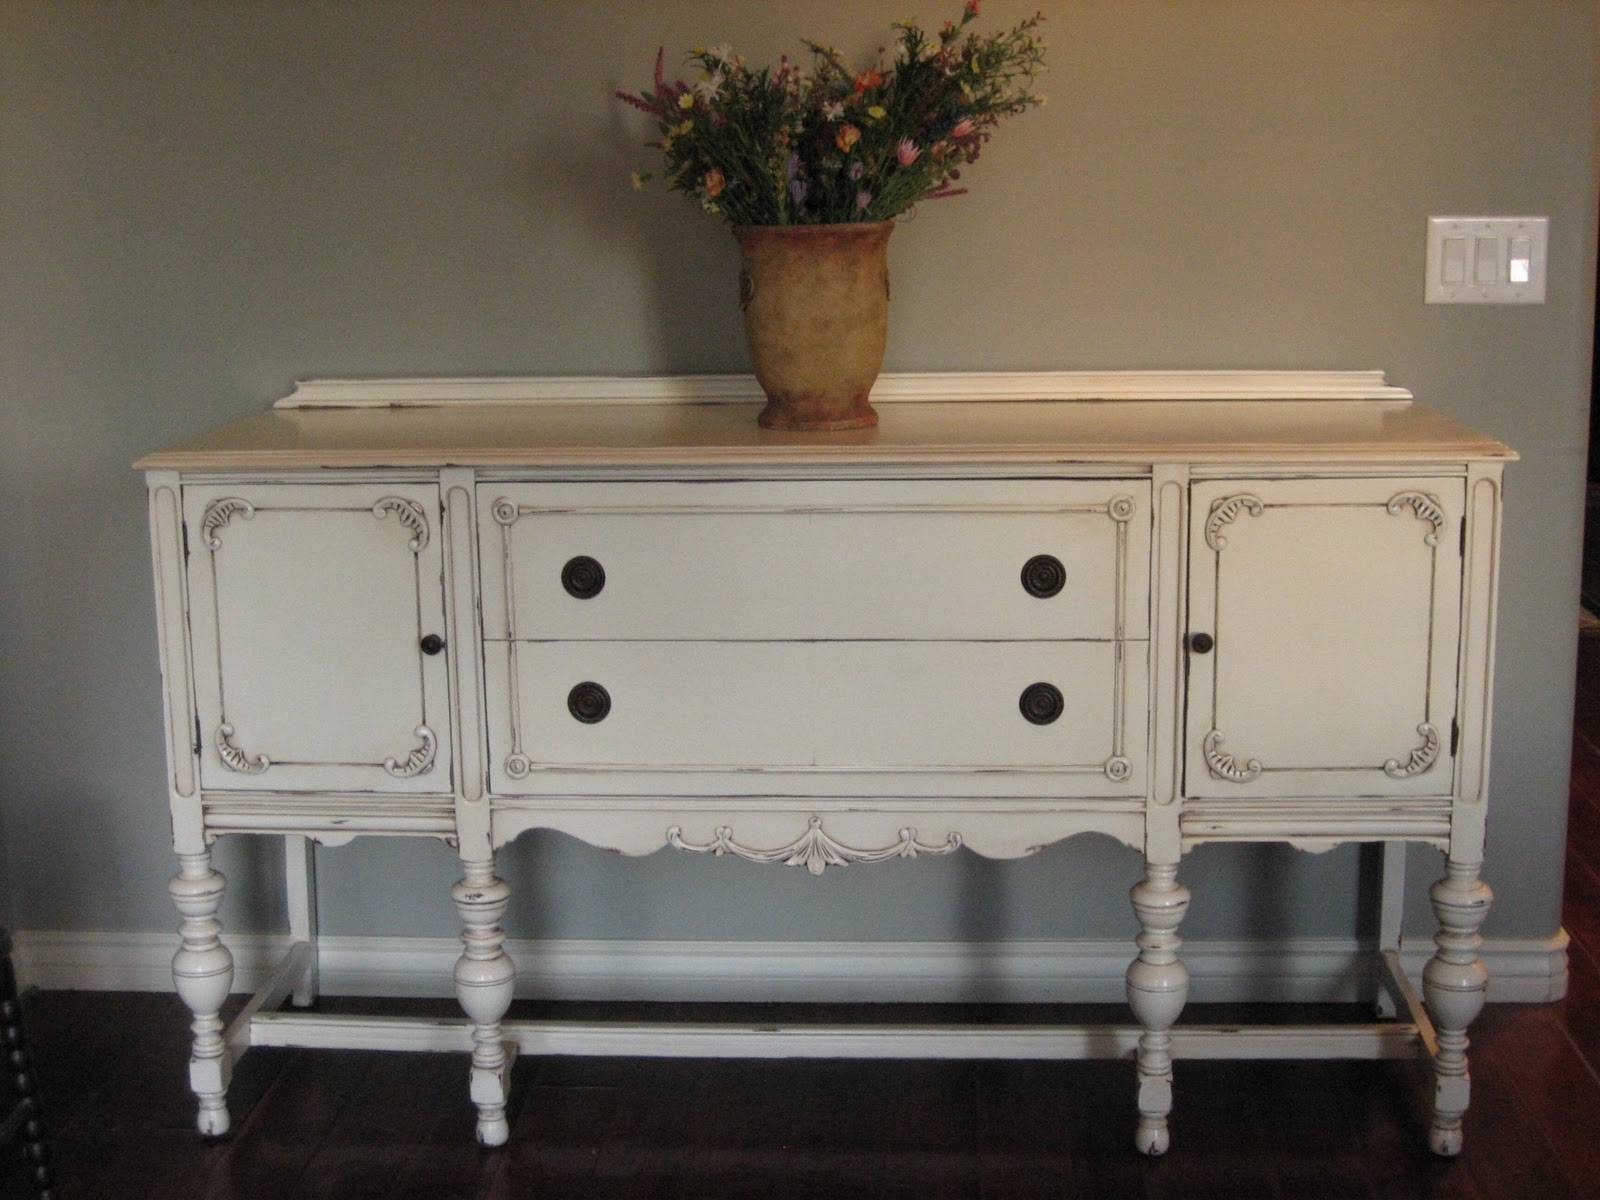 Inspiration about Inspirational Antique White Sideboard – Bjdgjy Pertaining To Most Up To Date Antique White Sideboards (#1 of 15)